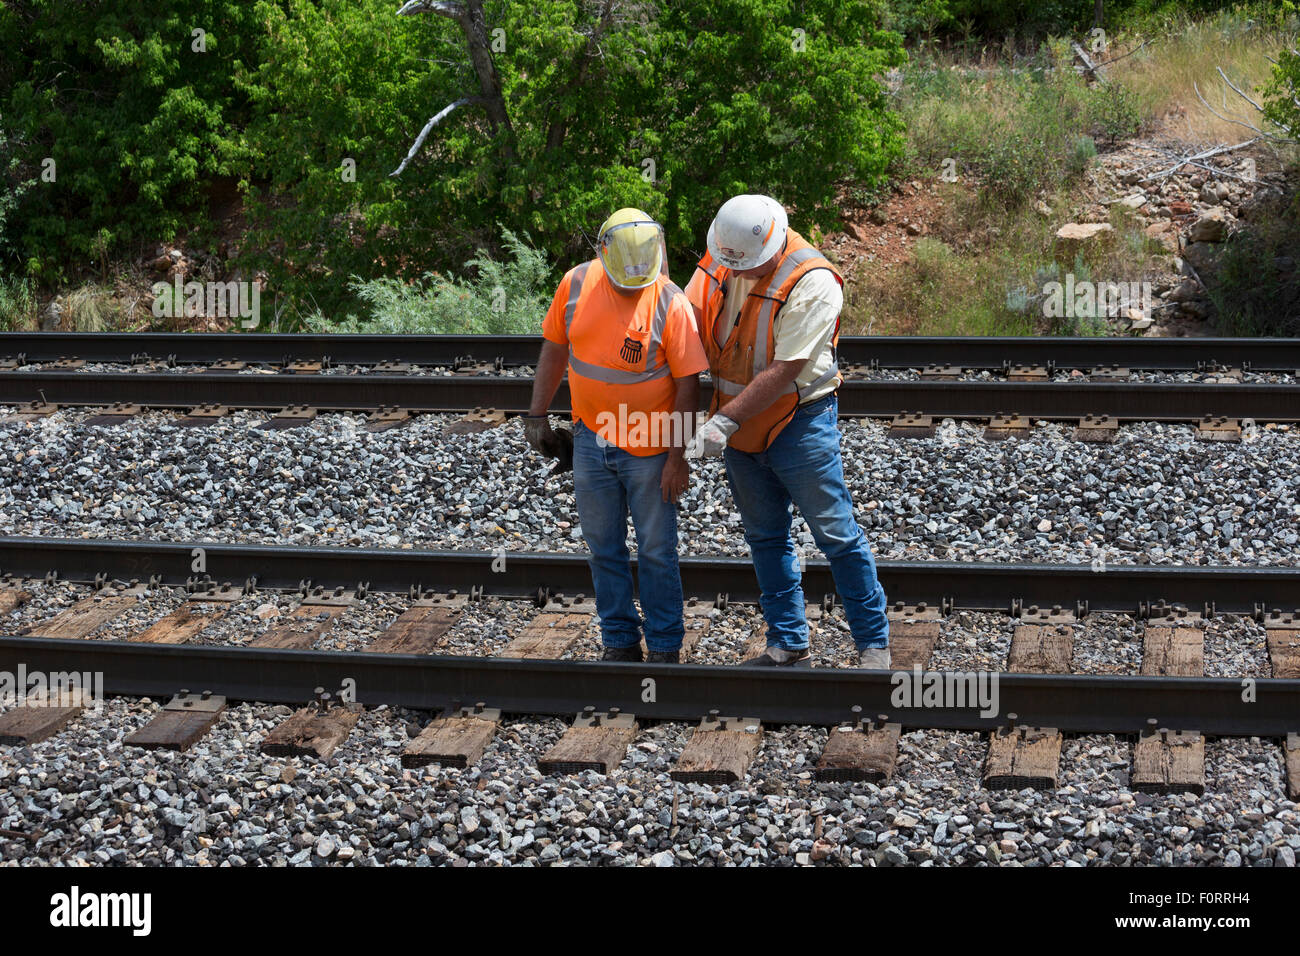 Thistle, Utah - Travailleurs inspecter la Union Pacific Railroad tracks. Photo Stock